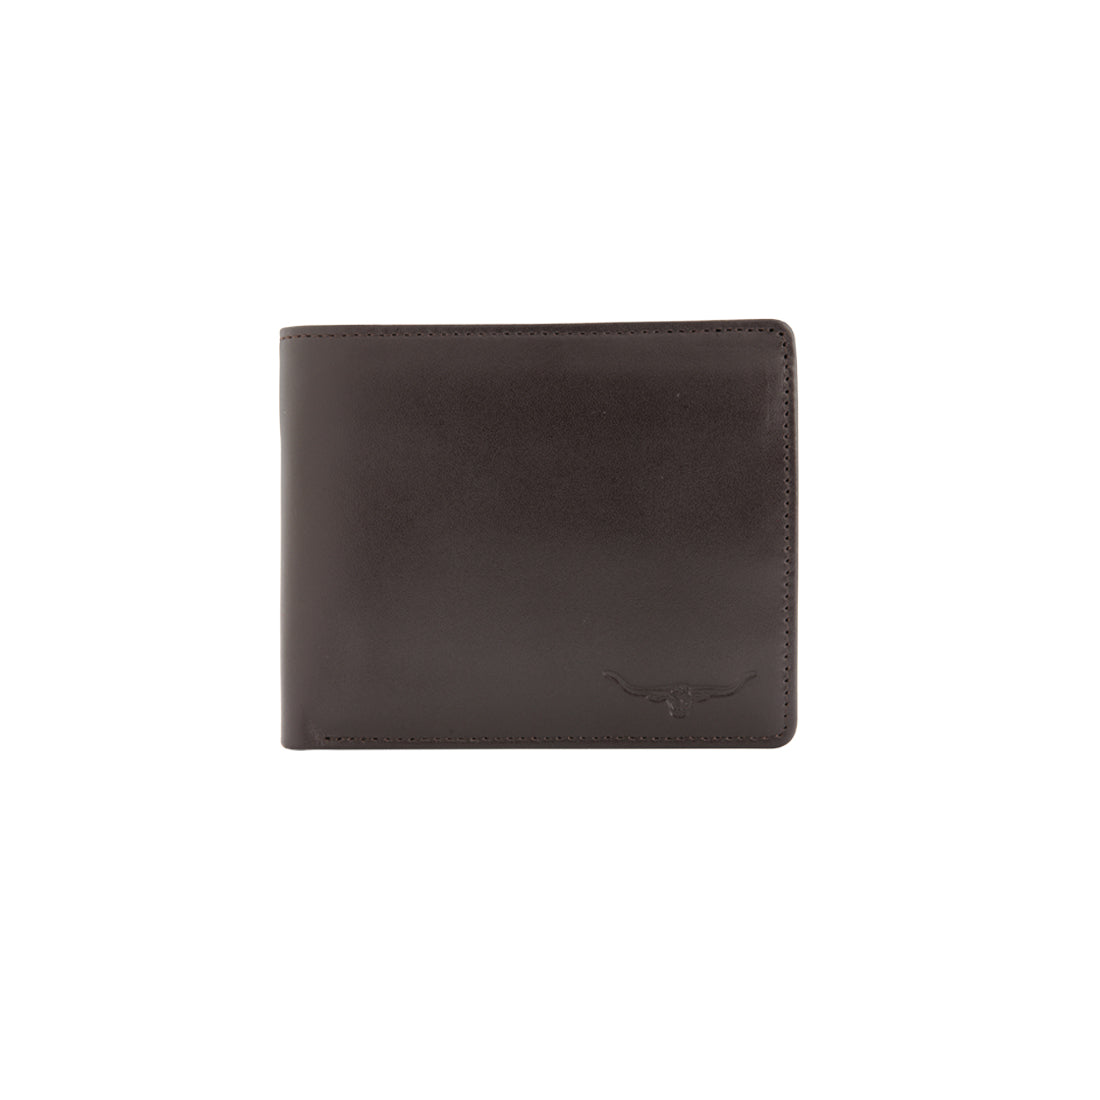 R.M.Williams Yearling Leather Chestnut Trifold-Wallet CG433.41